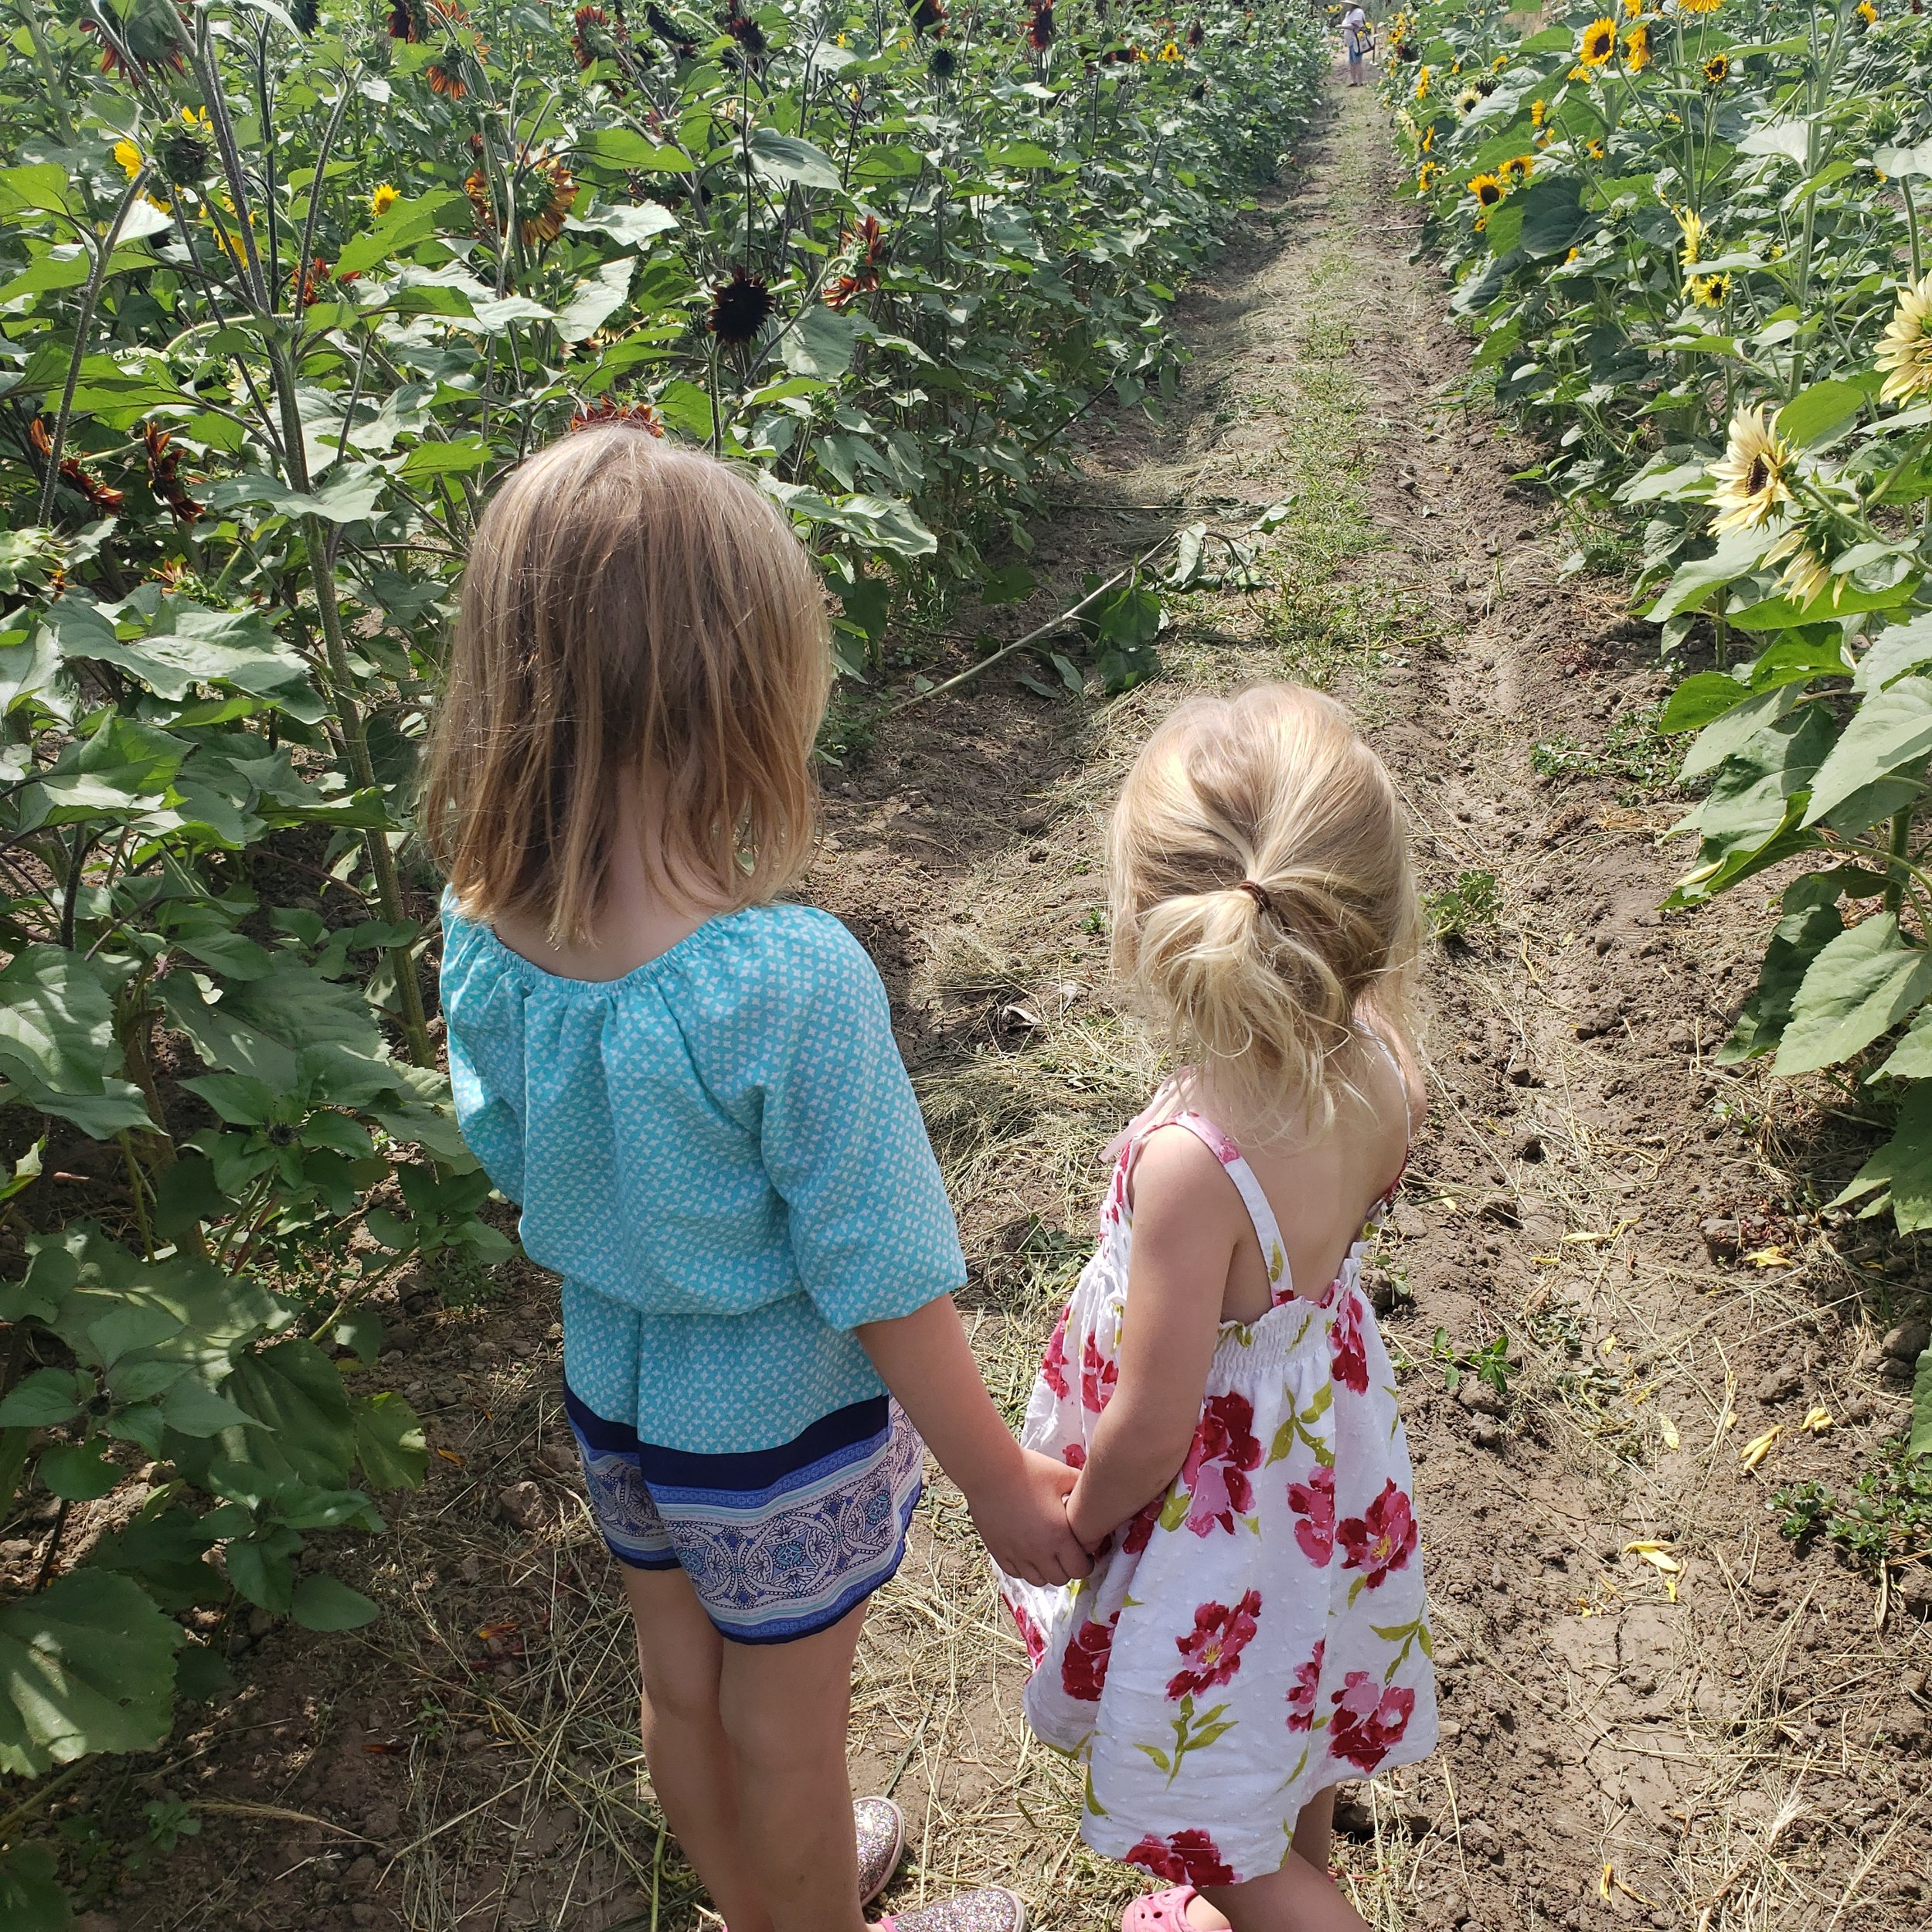 Two small girls, standing in a garden full of sunflowers